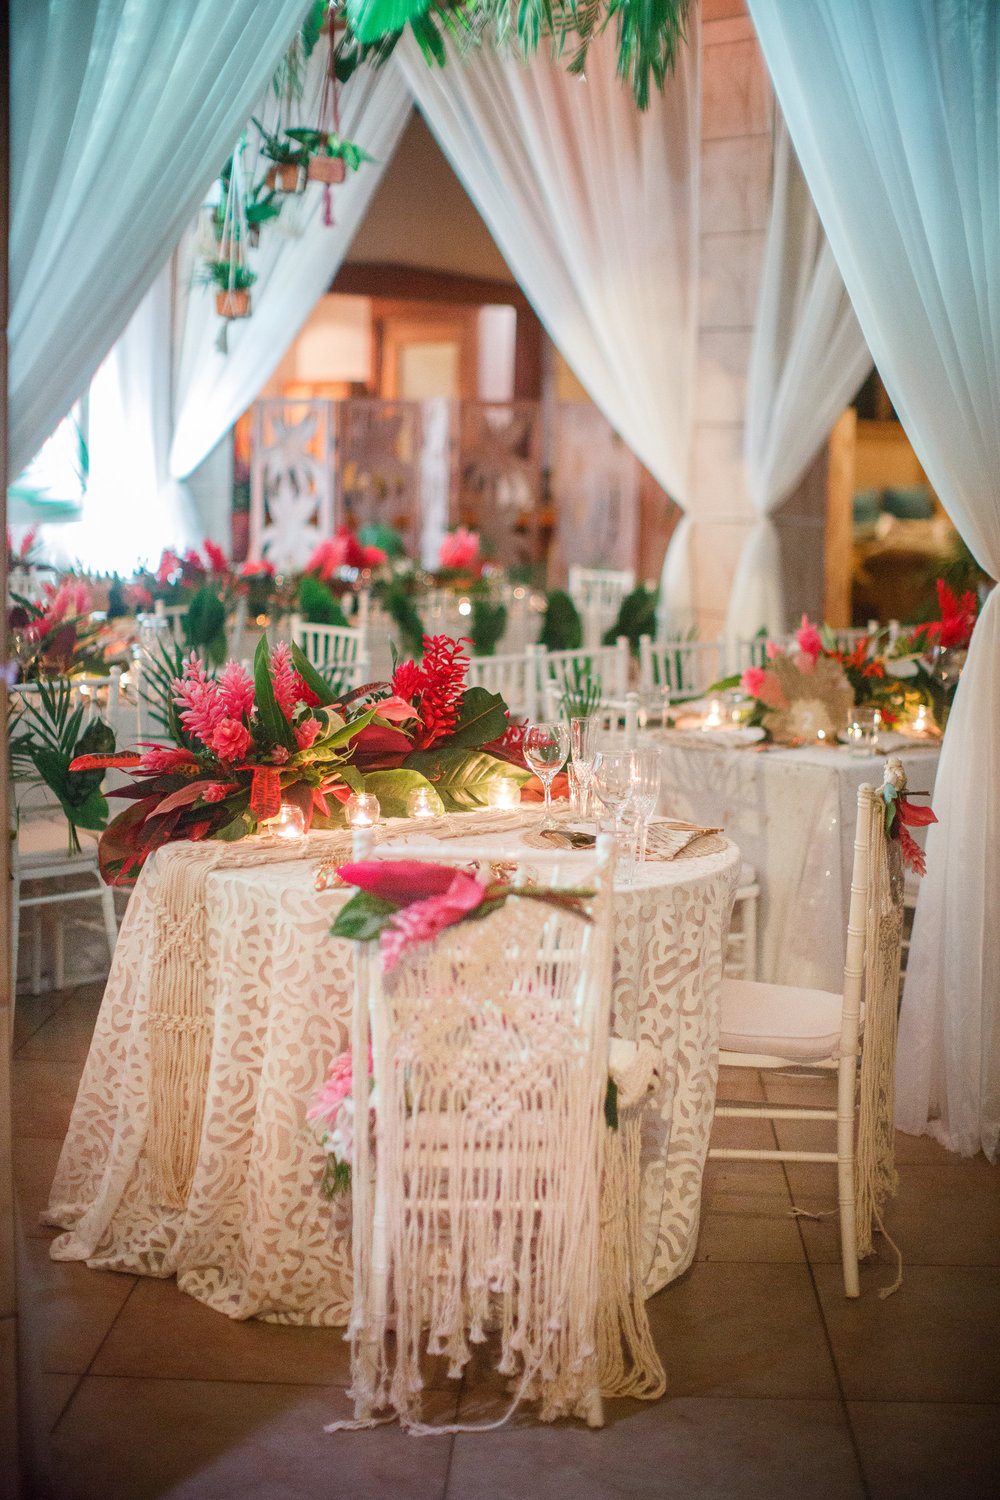 Fiji_destination_wedding_centrepiece_tropical_bridal_table_luxury_linen_draping.jpg